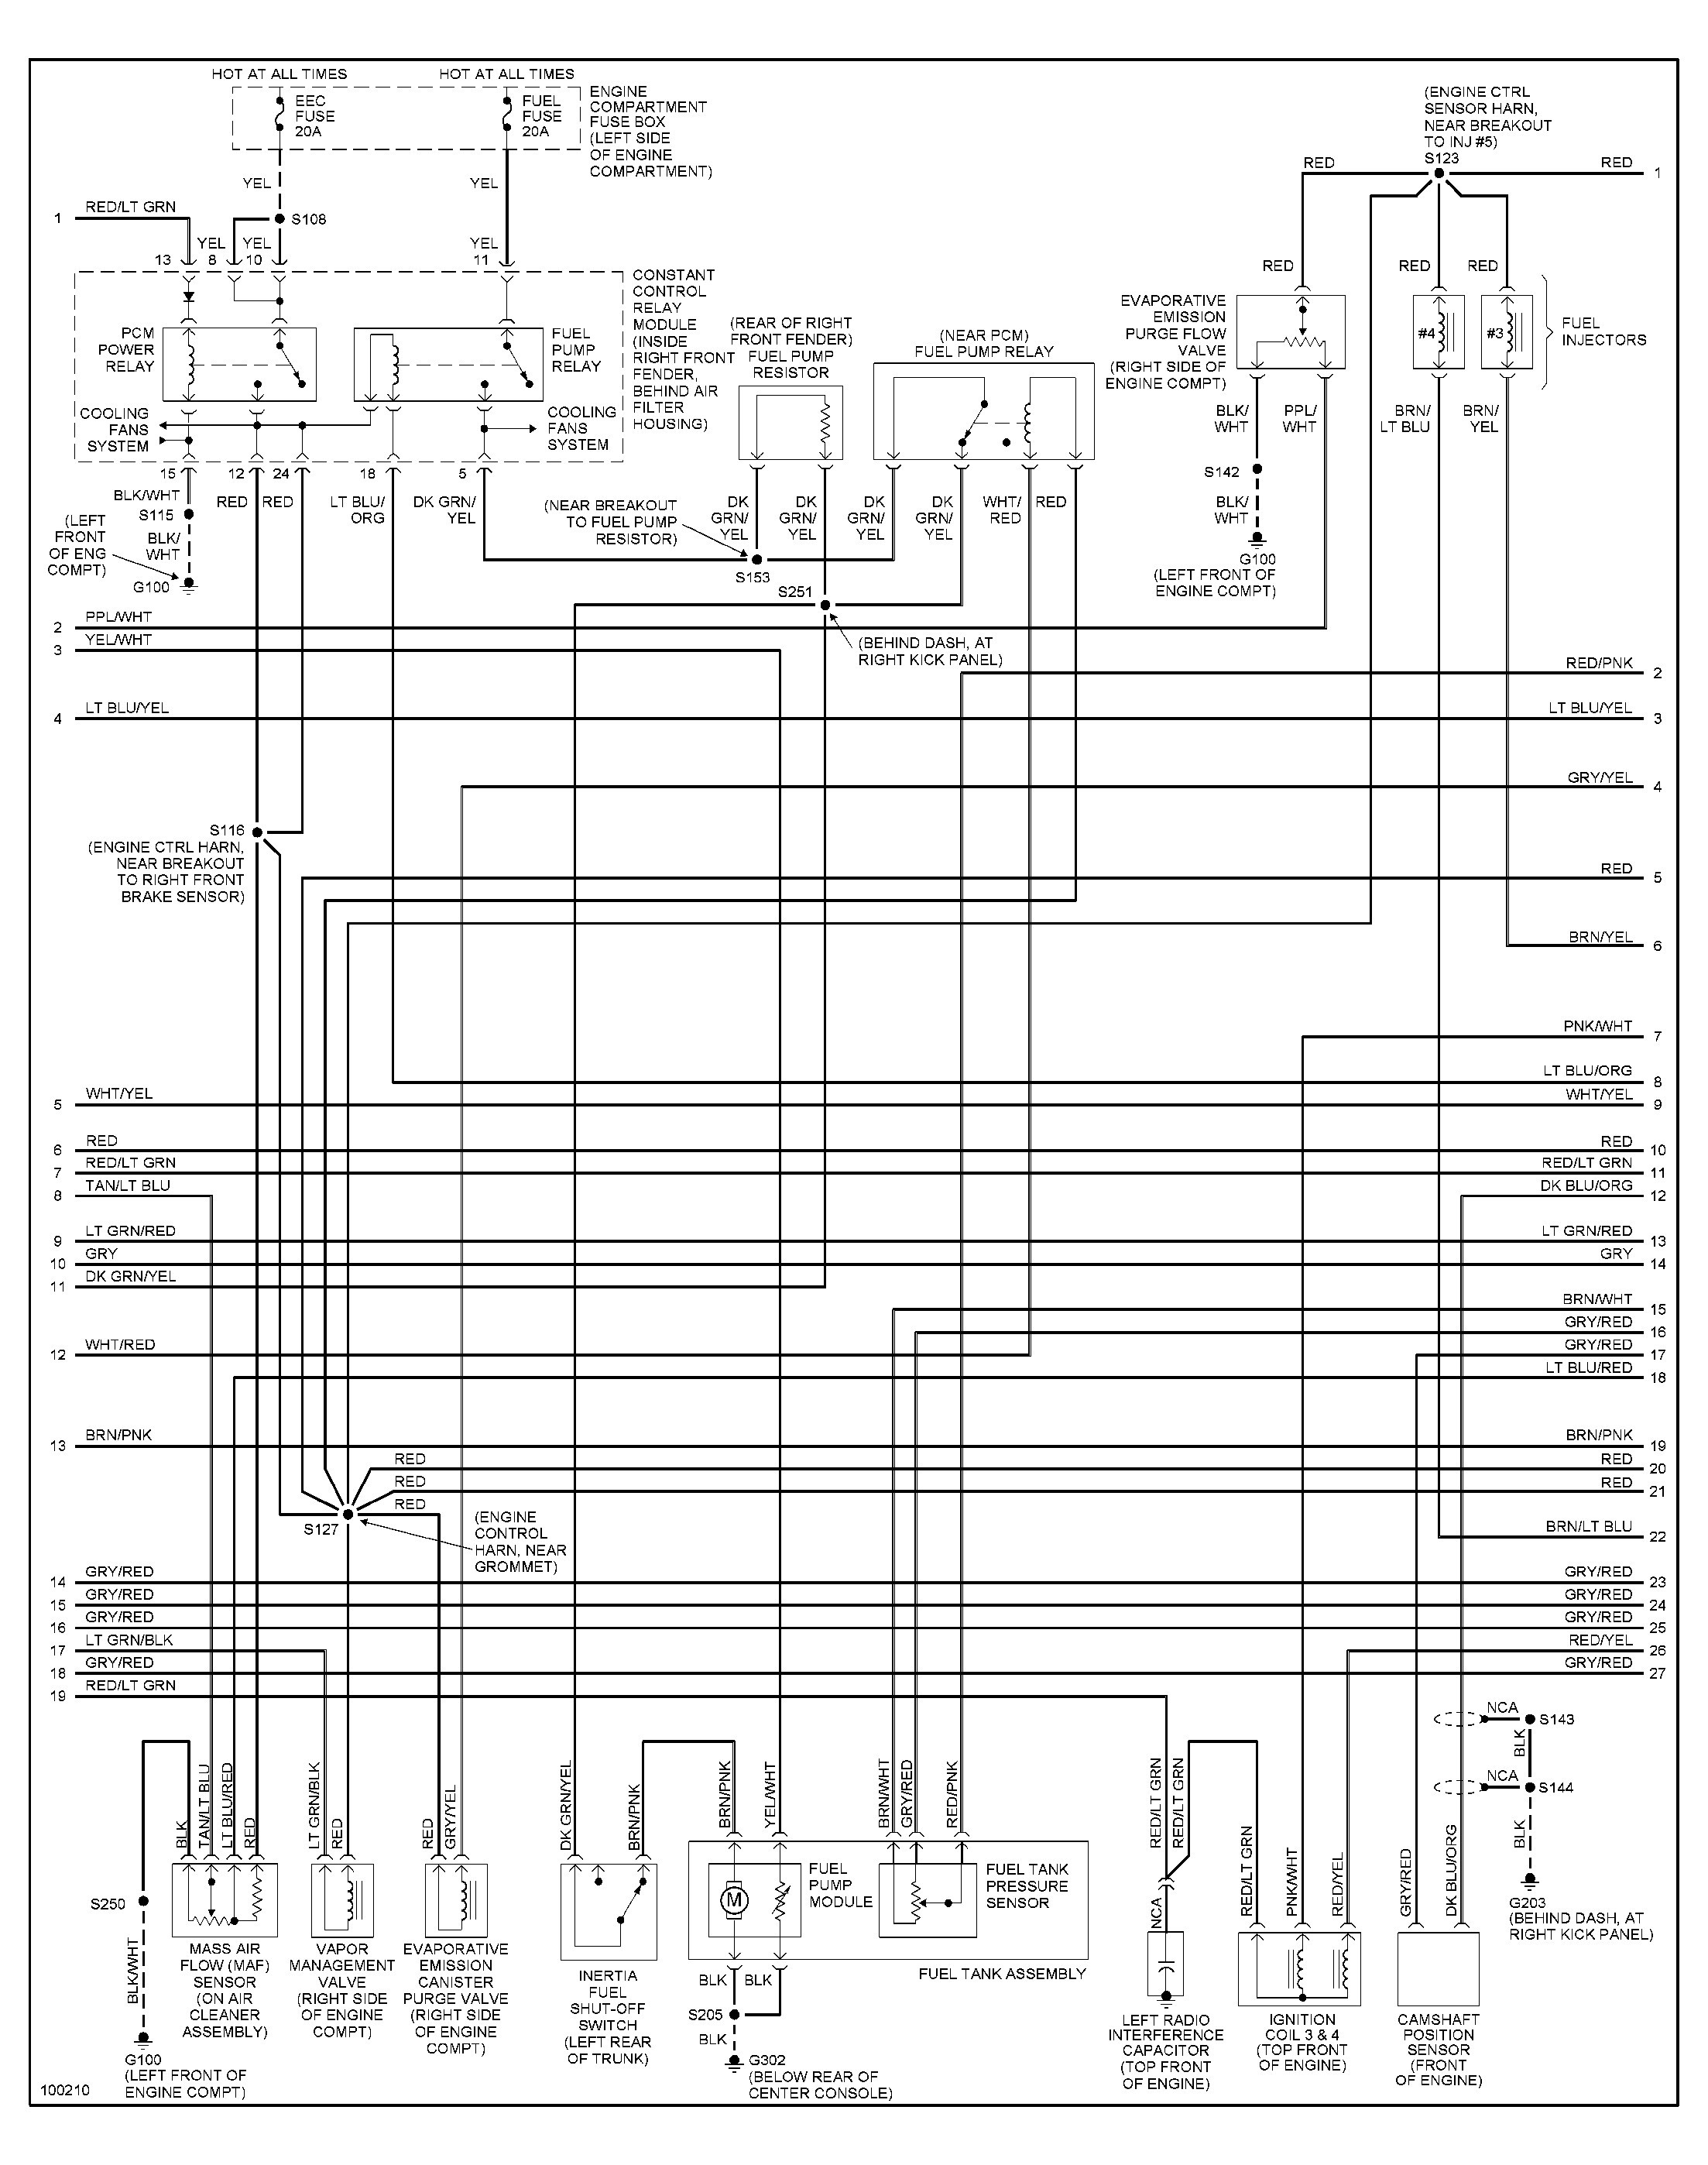 1997 Mustang Wiring Diagram